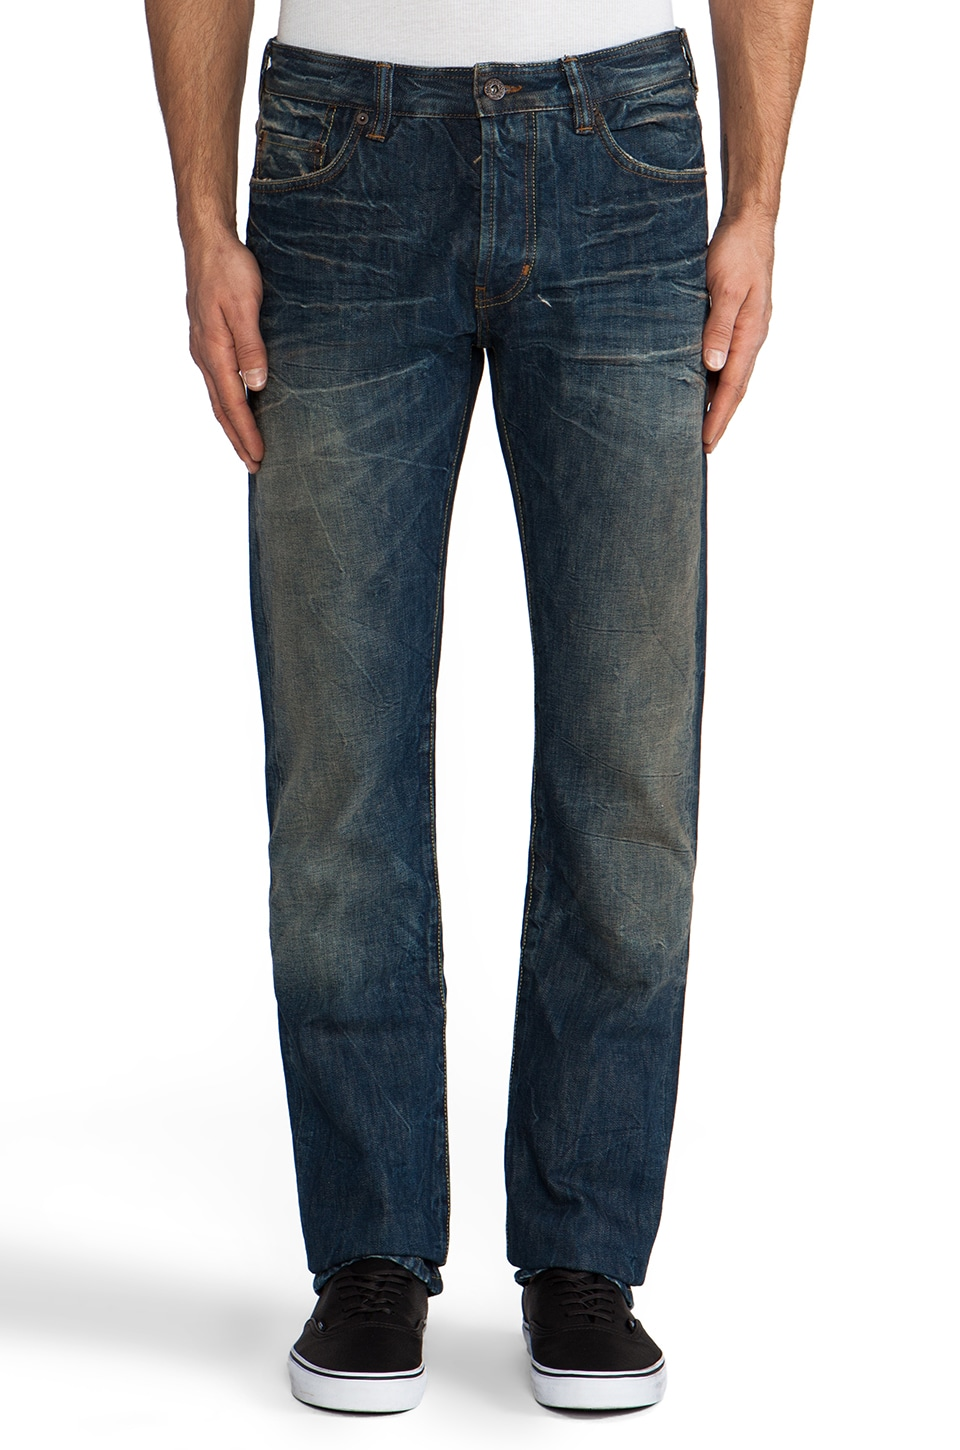 Natural Selection Denim Smith Straight in Saddle